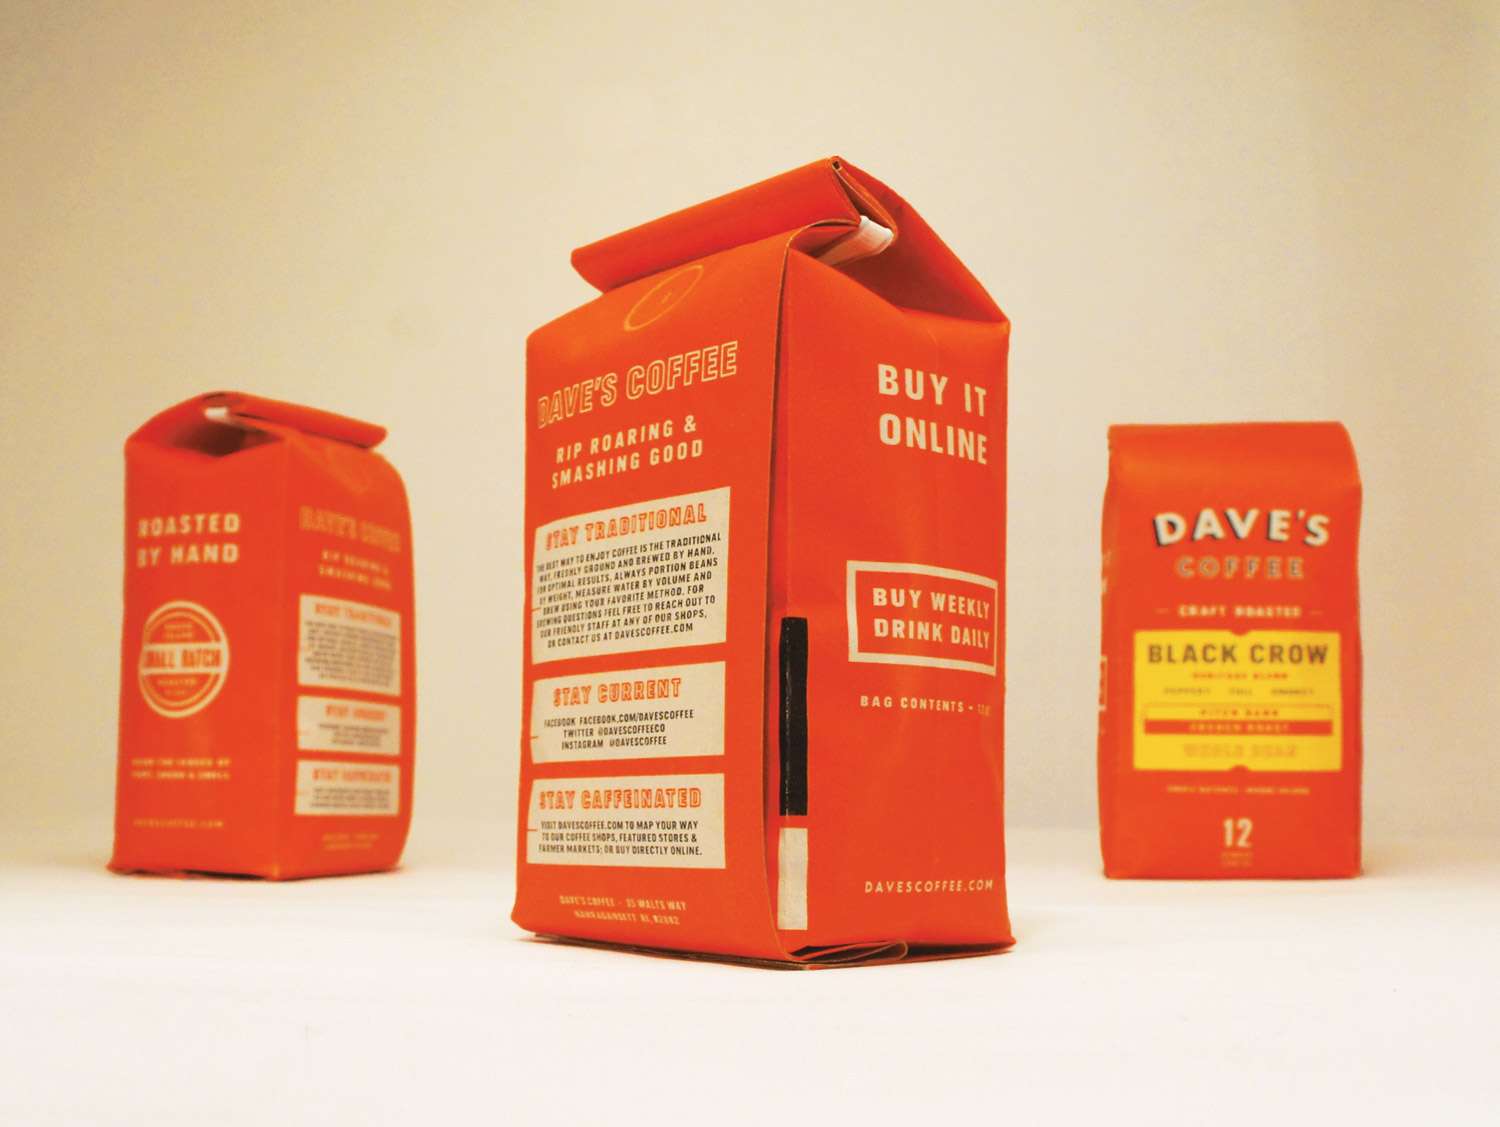 Daves-Coffee-Packaging-003.jpg